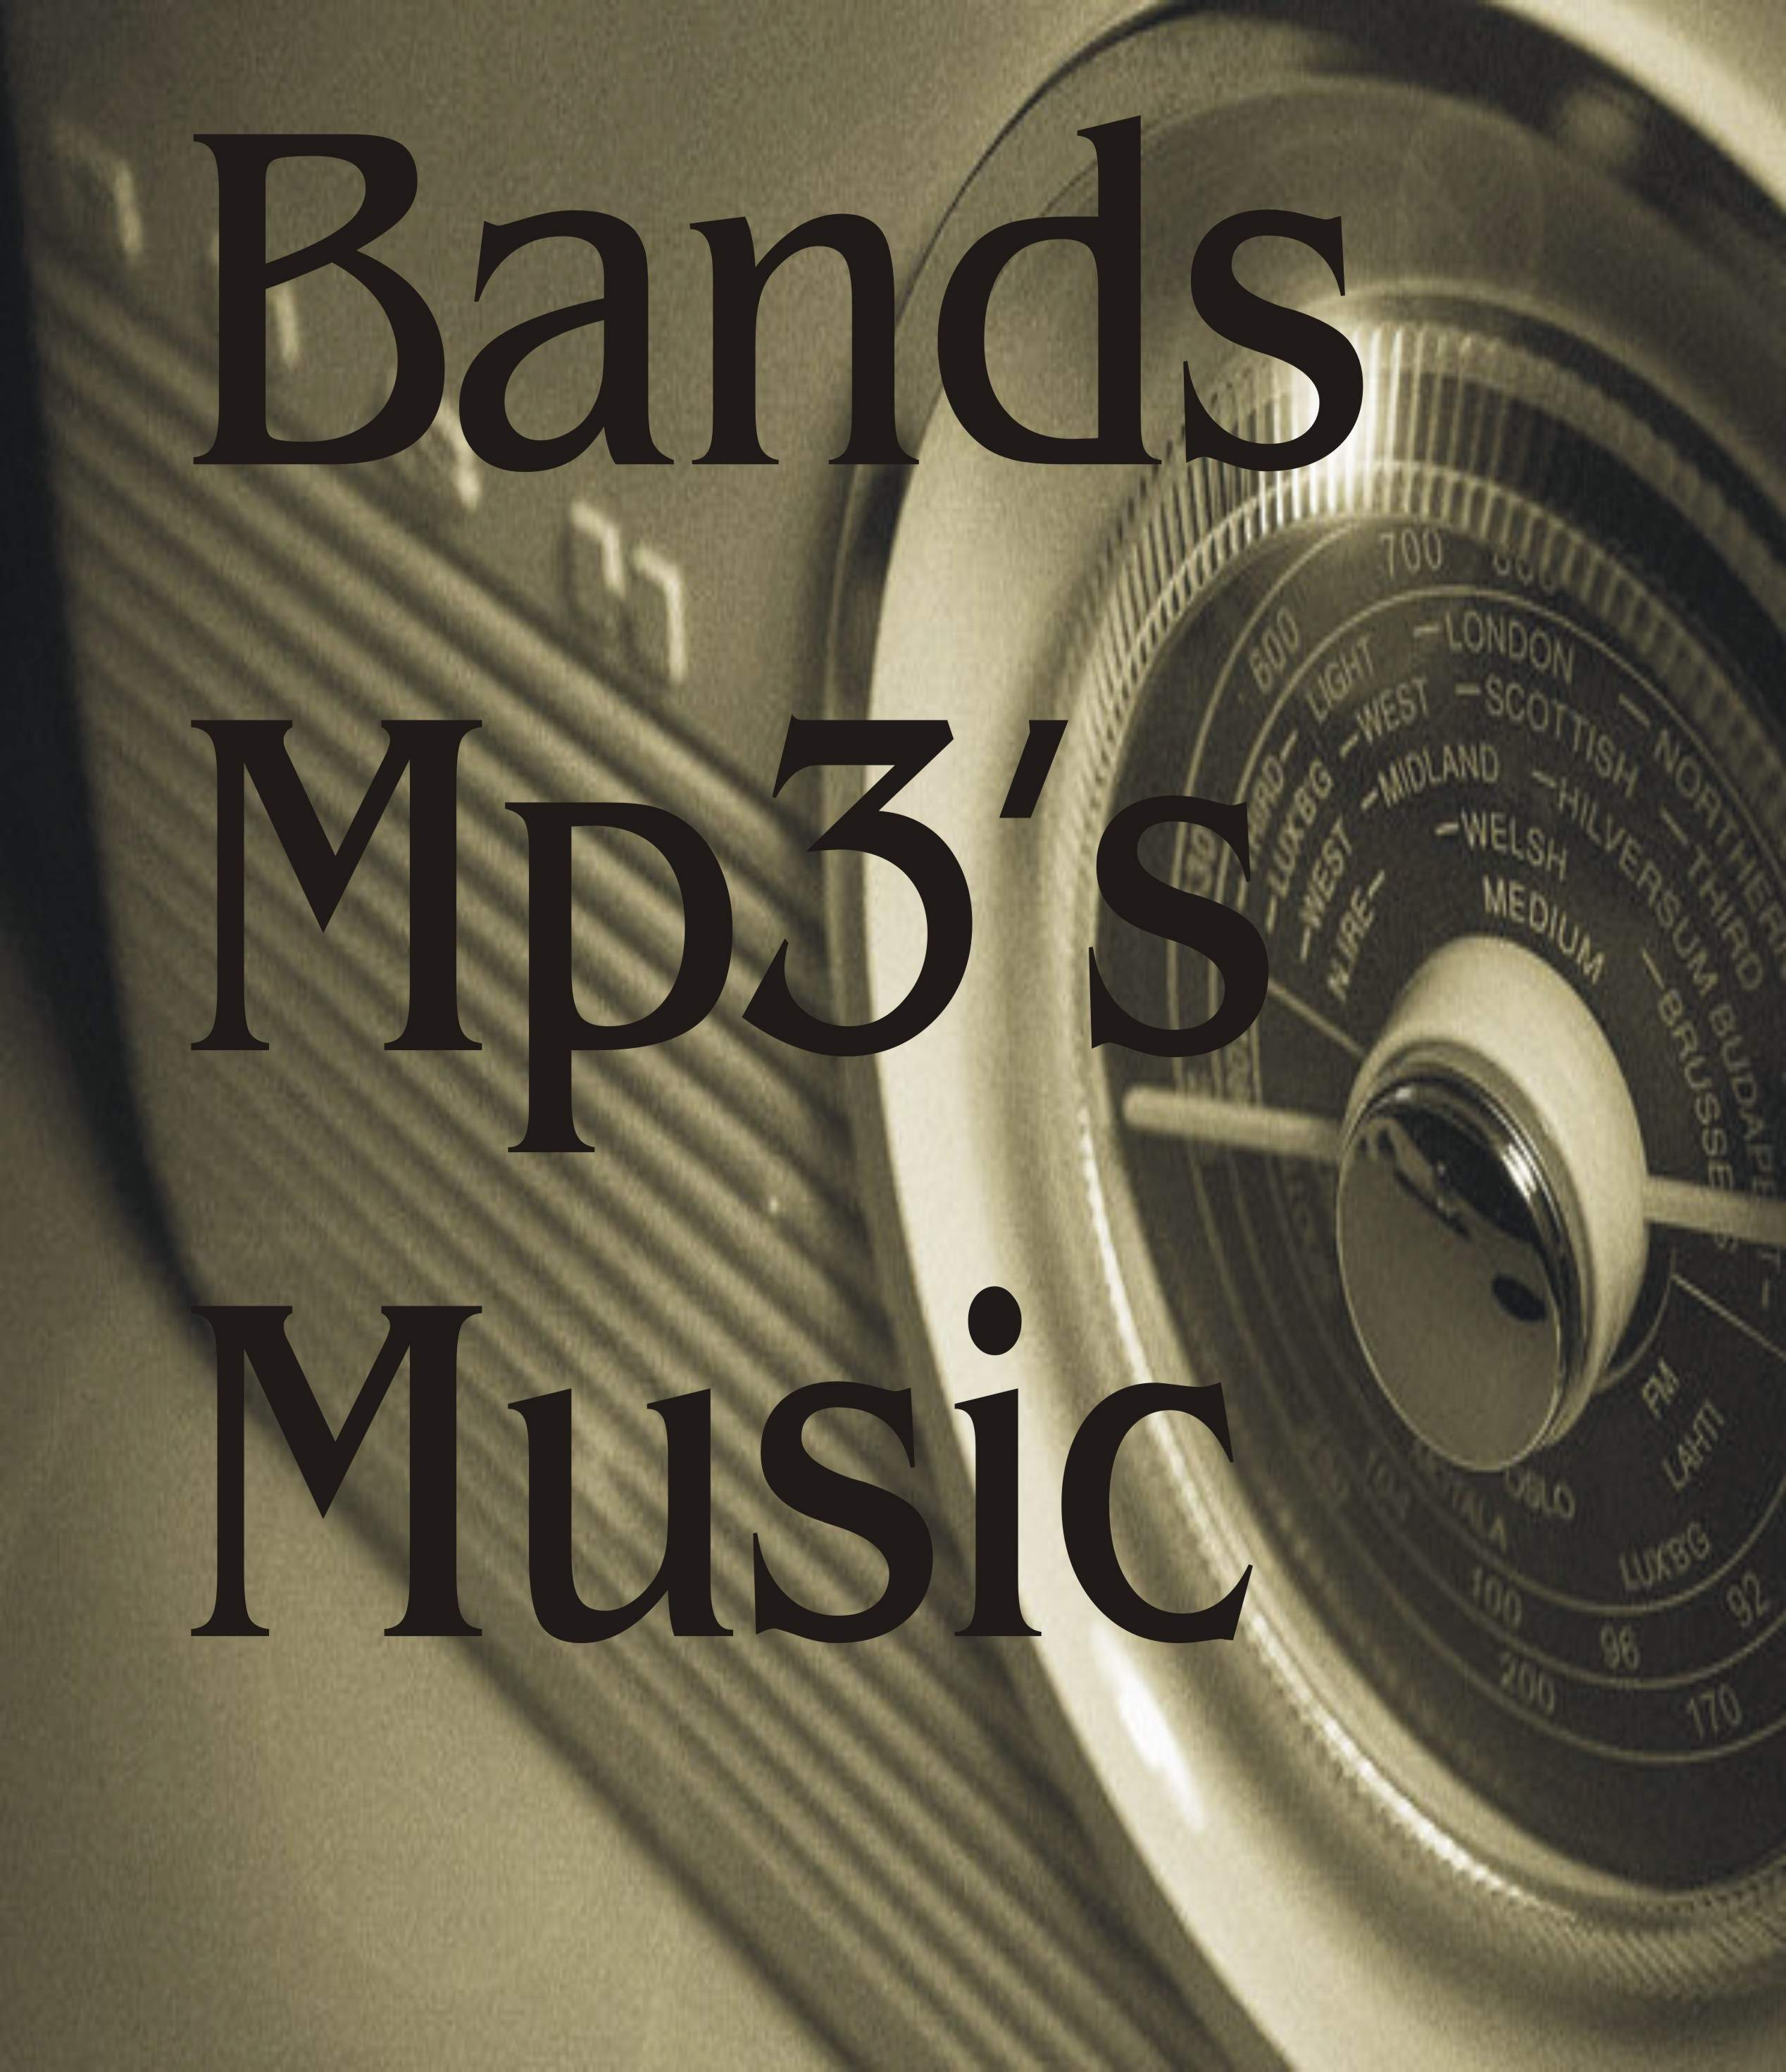 bands music and mp3s